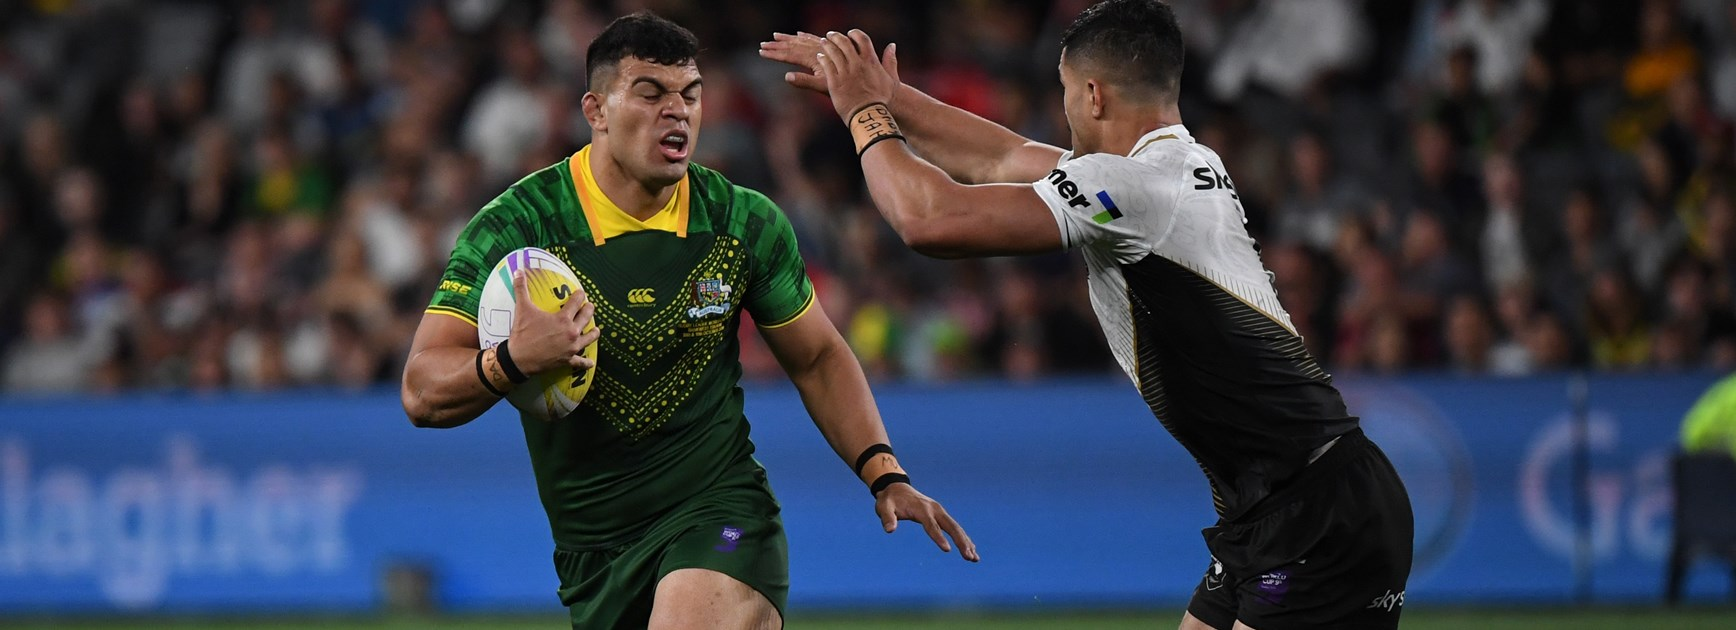 David Fifita on the charge for Australia at the World 9s.